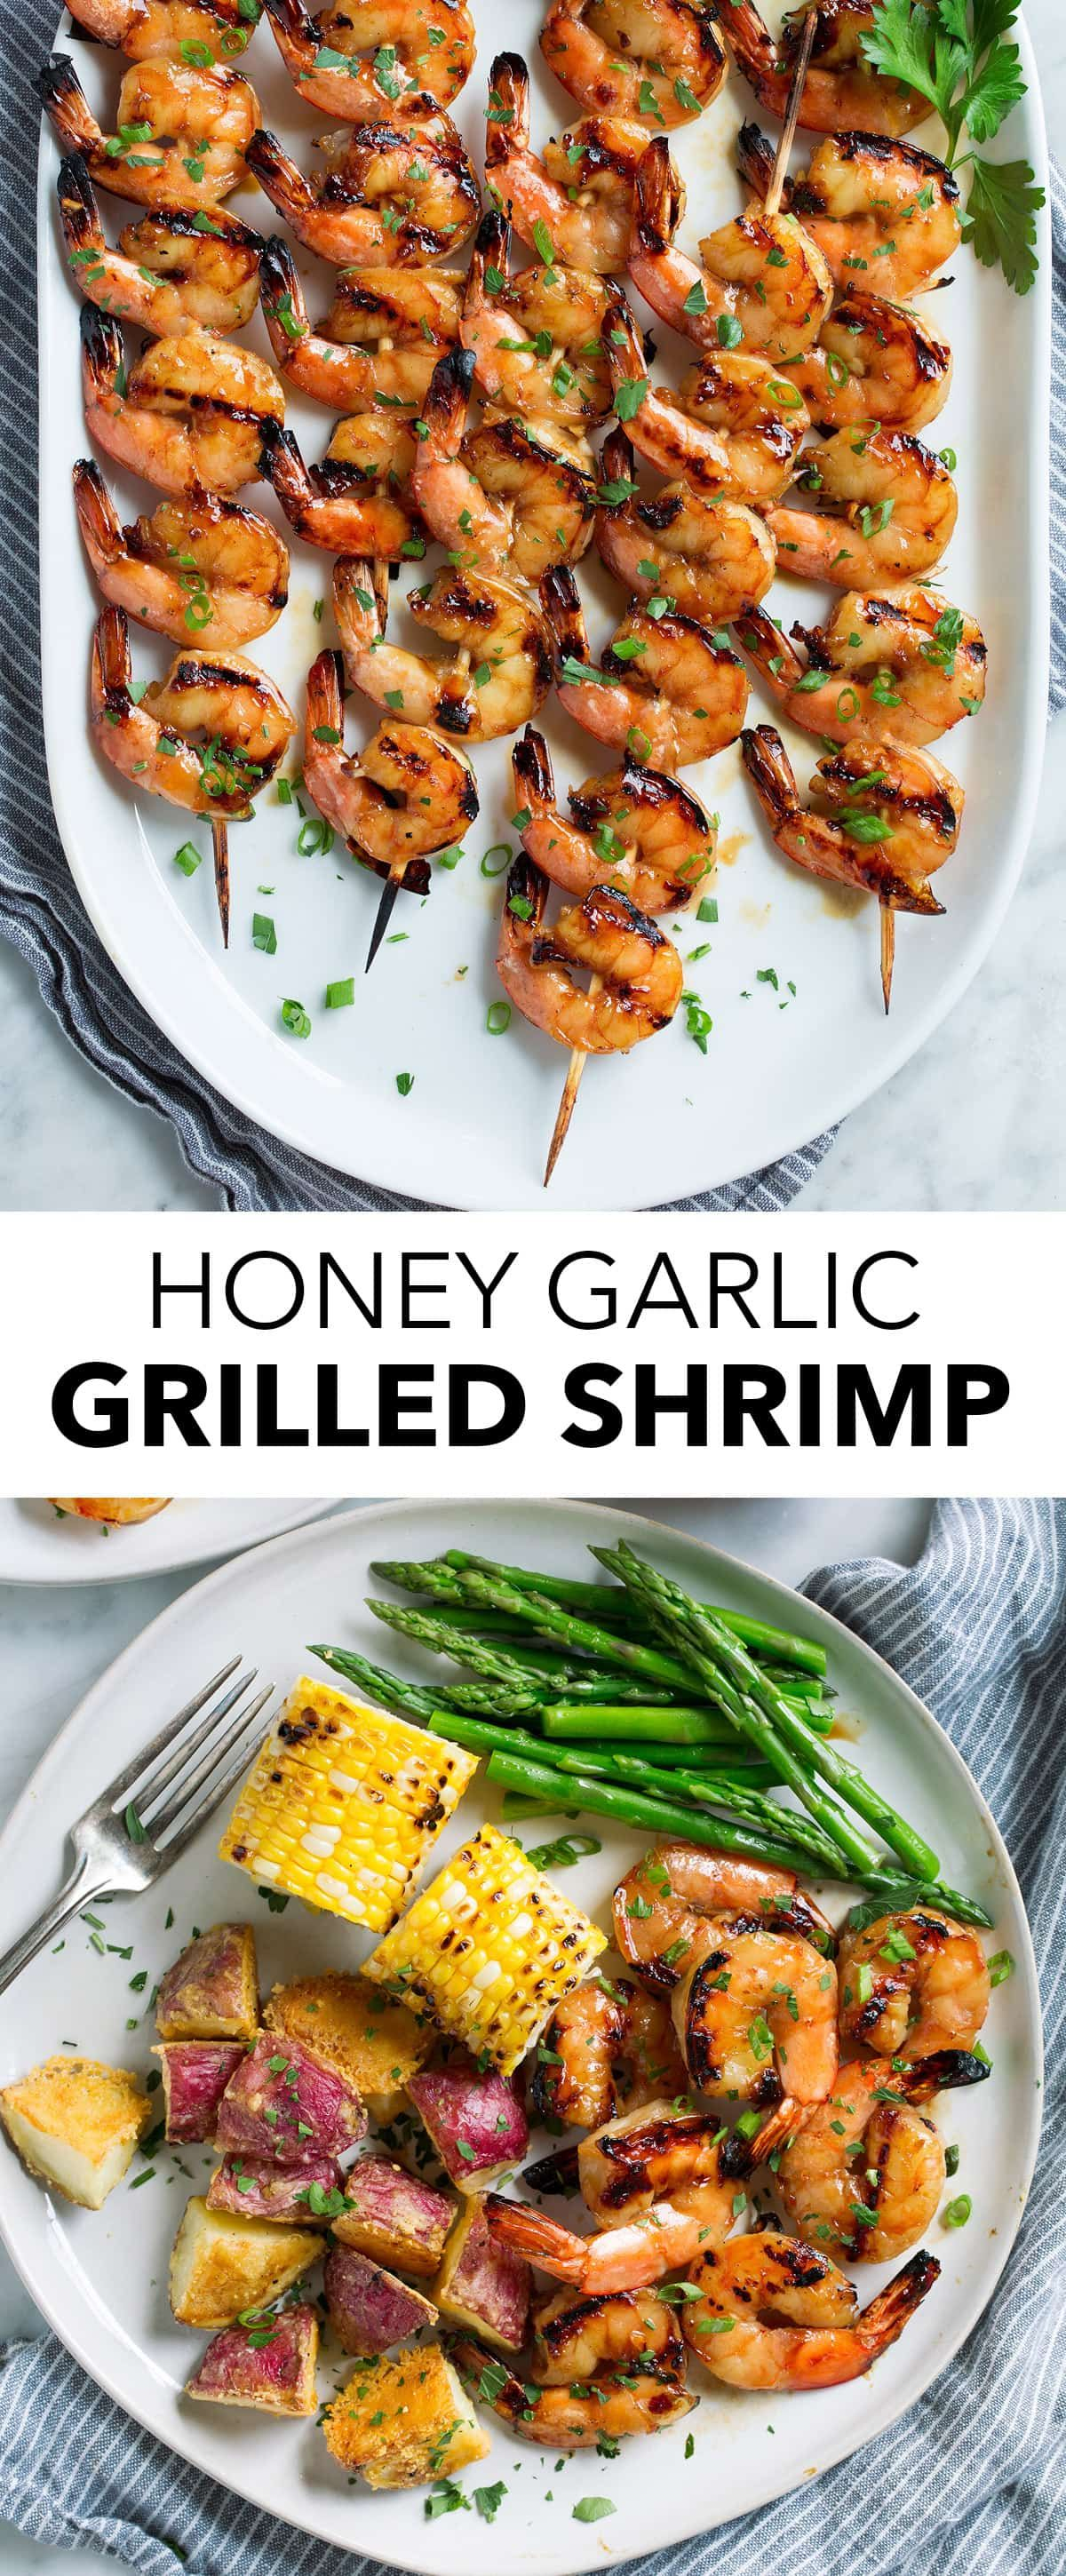 Grilled Shrimp {with Honey Garlic Marinade} - Cooking Classy